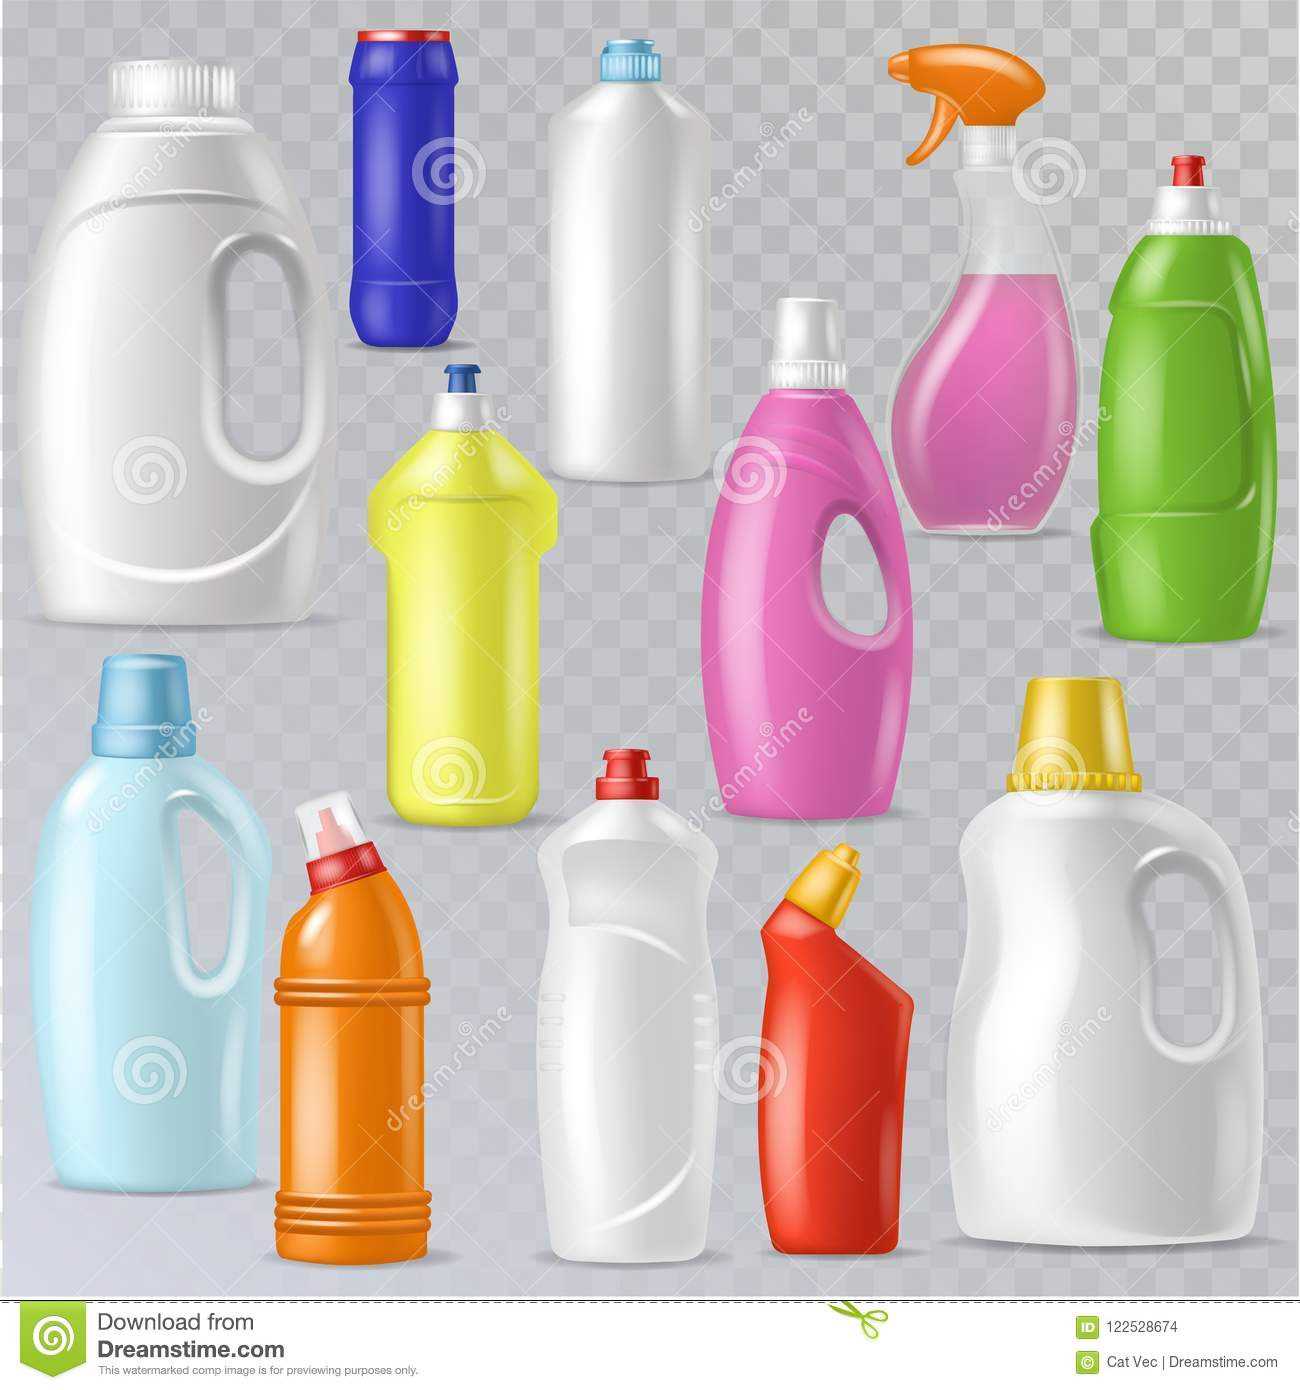 Detergent bottle vector plastic blank container with detergency liquid and mockup household cleaner product for laundry